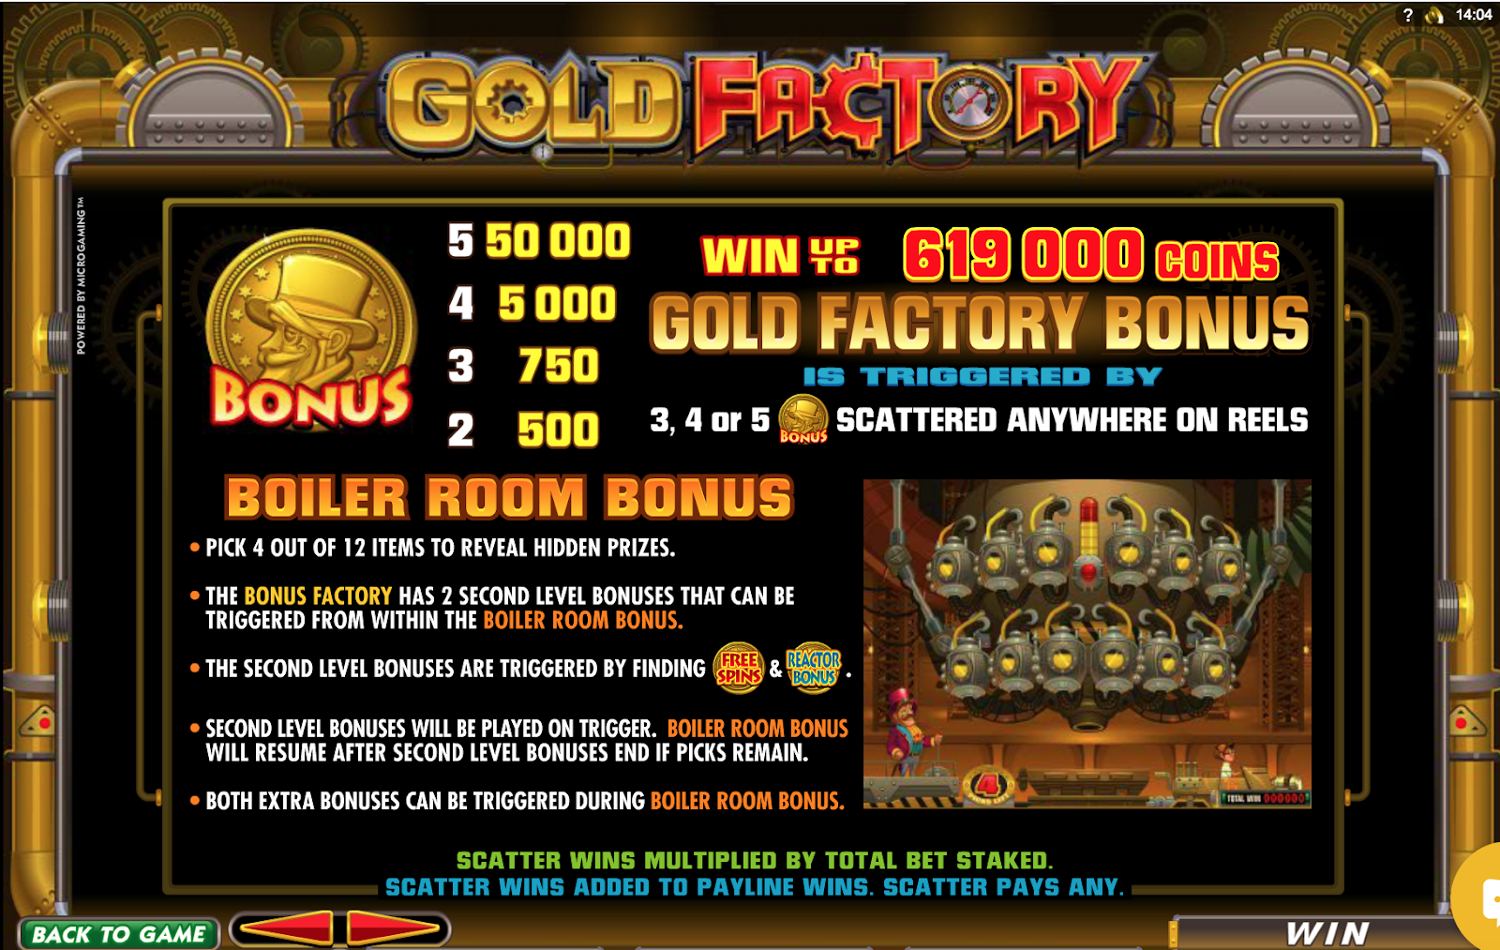 Gold Factory Bonus Game Paytable